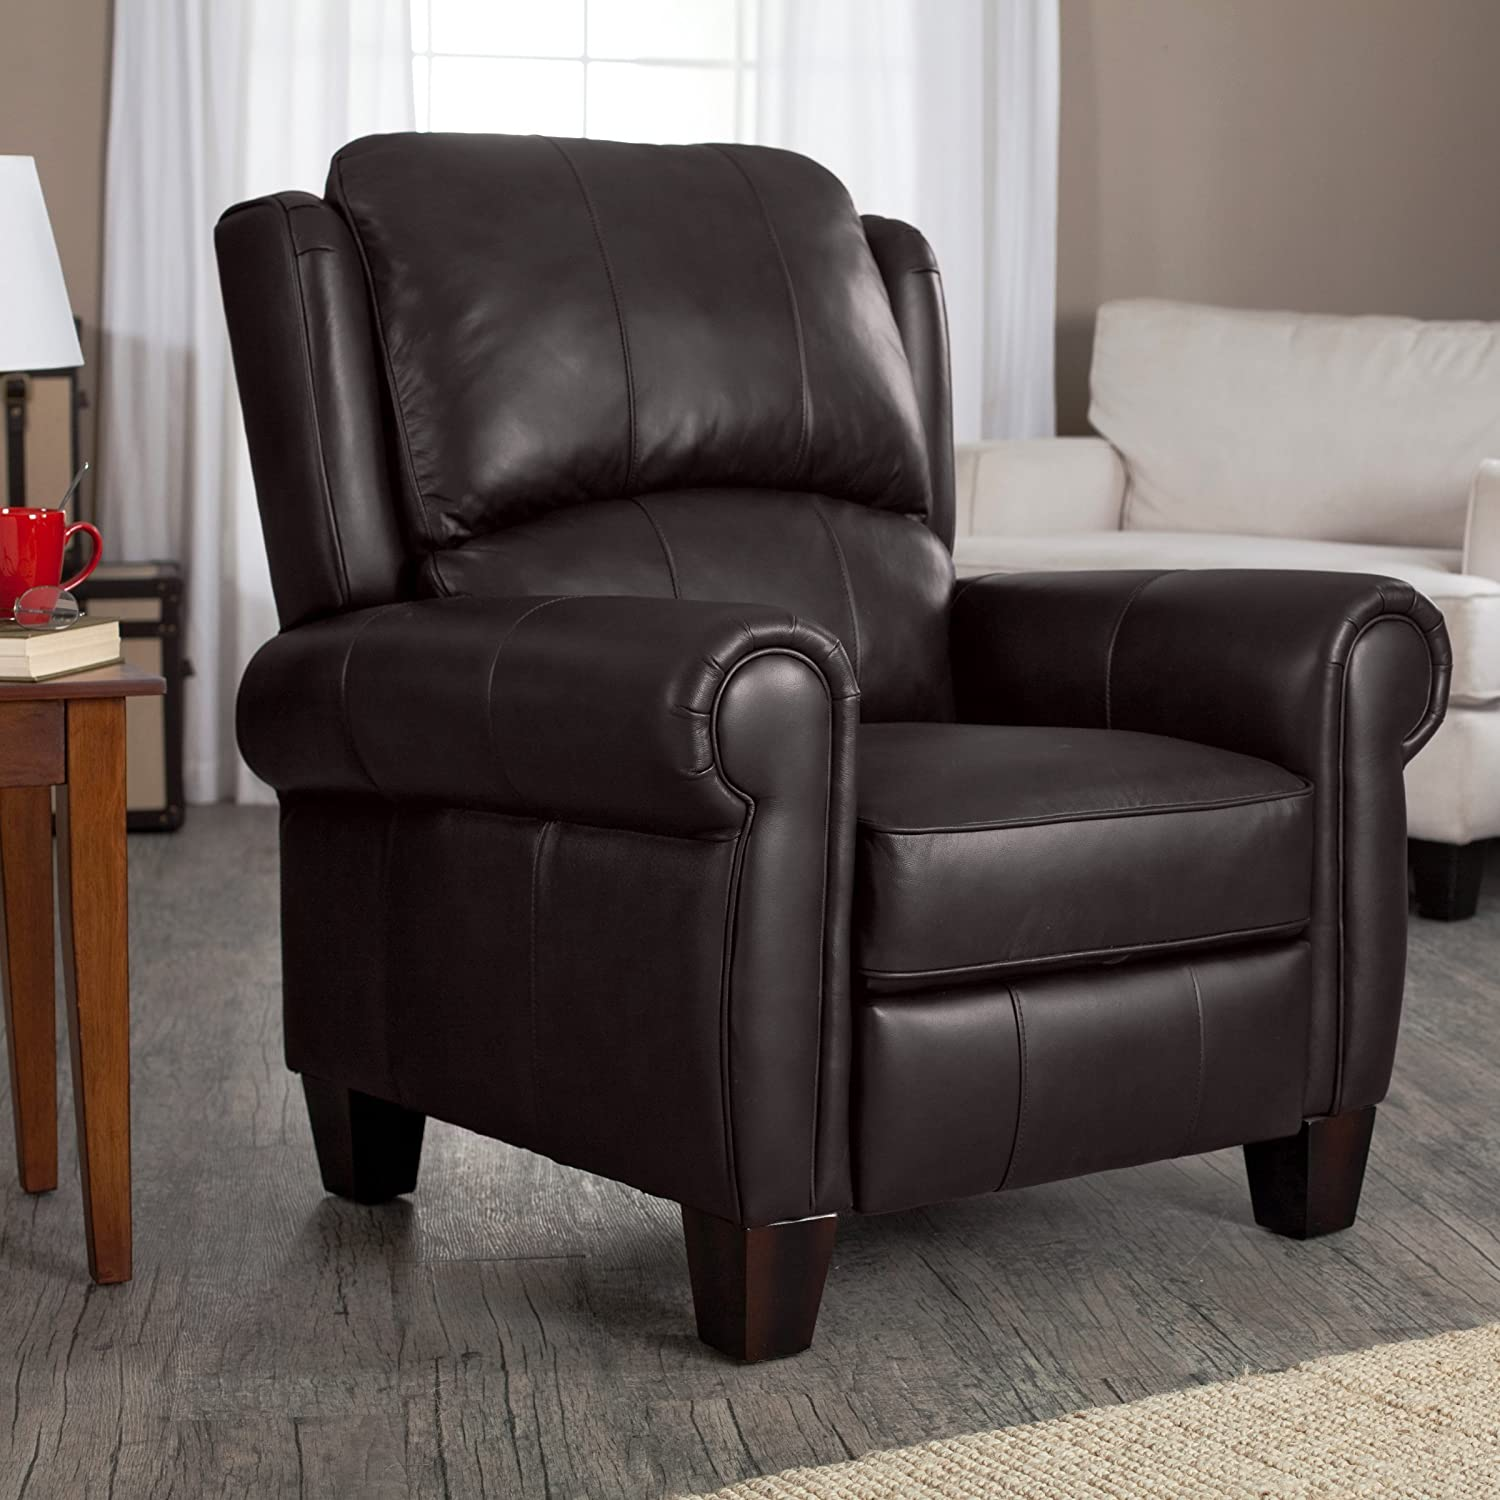 Amazon com brown leather recliner living room furniture barcalounger office chair recliners charleston wingback buy today kitchen dining